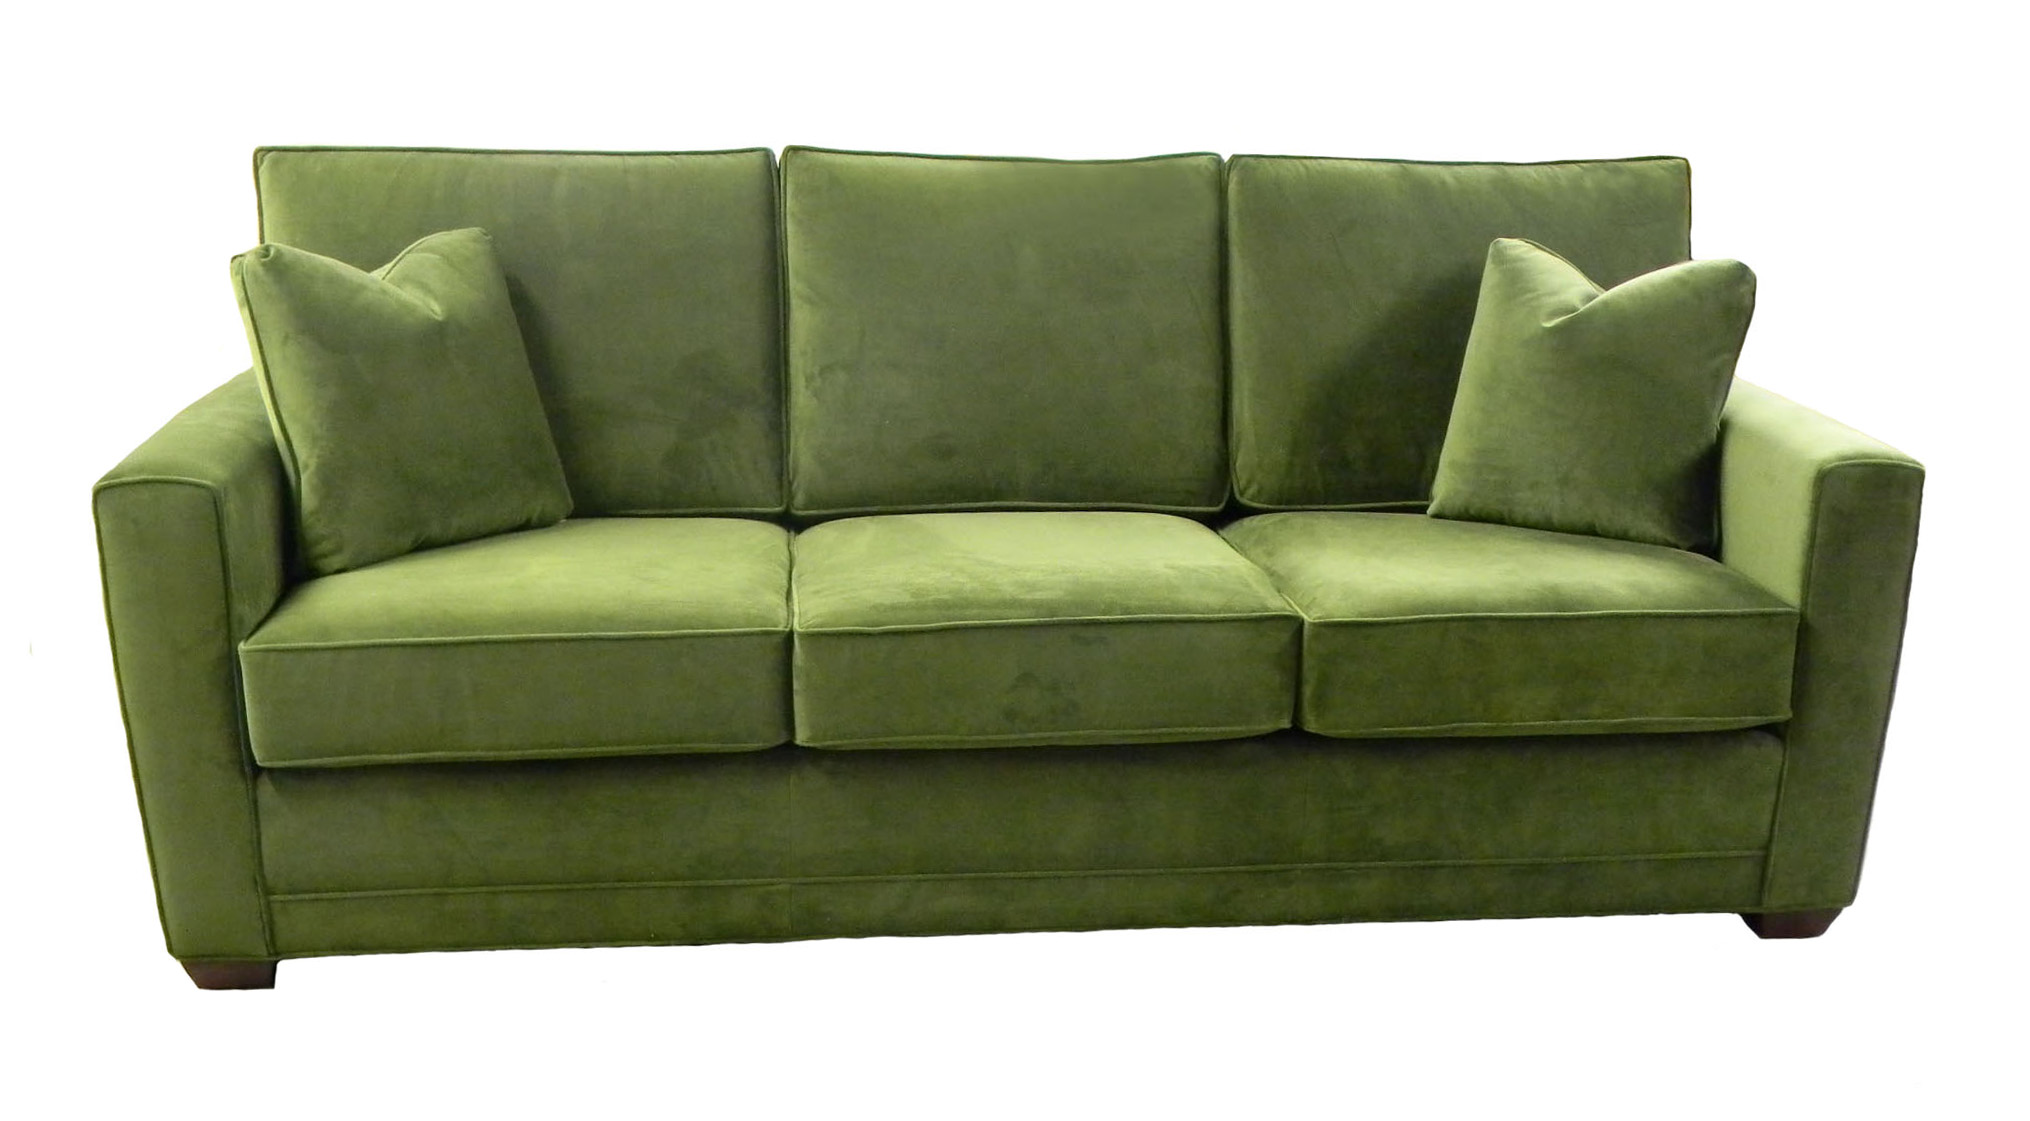 Carolina Chair Sofa Carolina Chair English Sofa Centerfieldbar